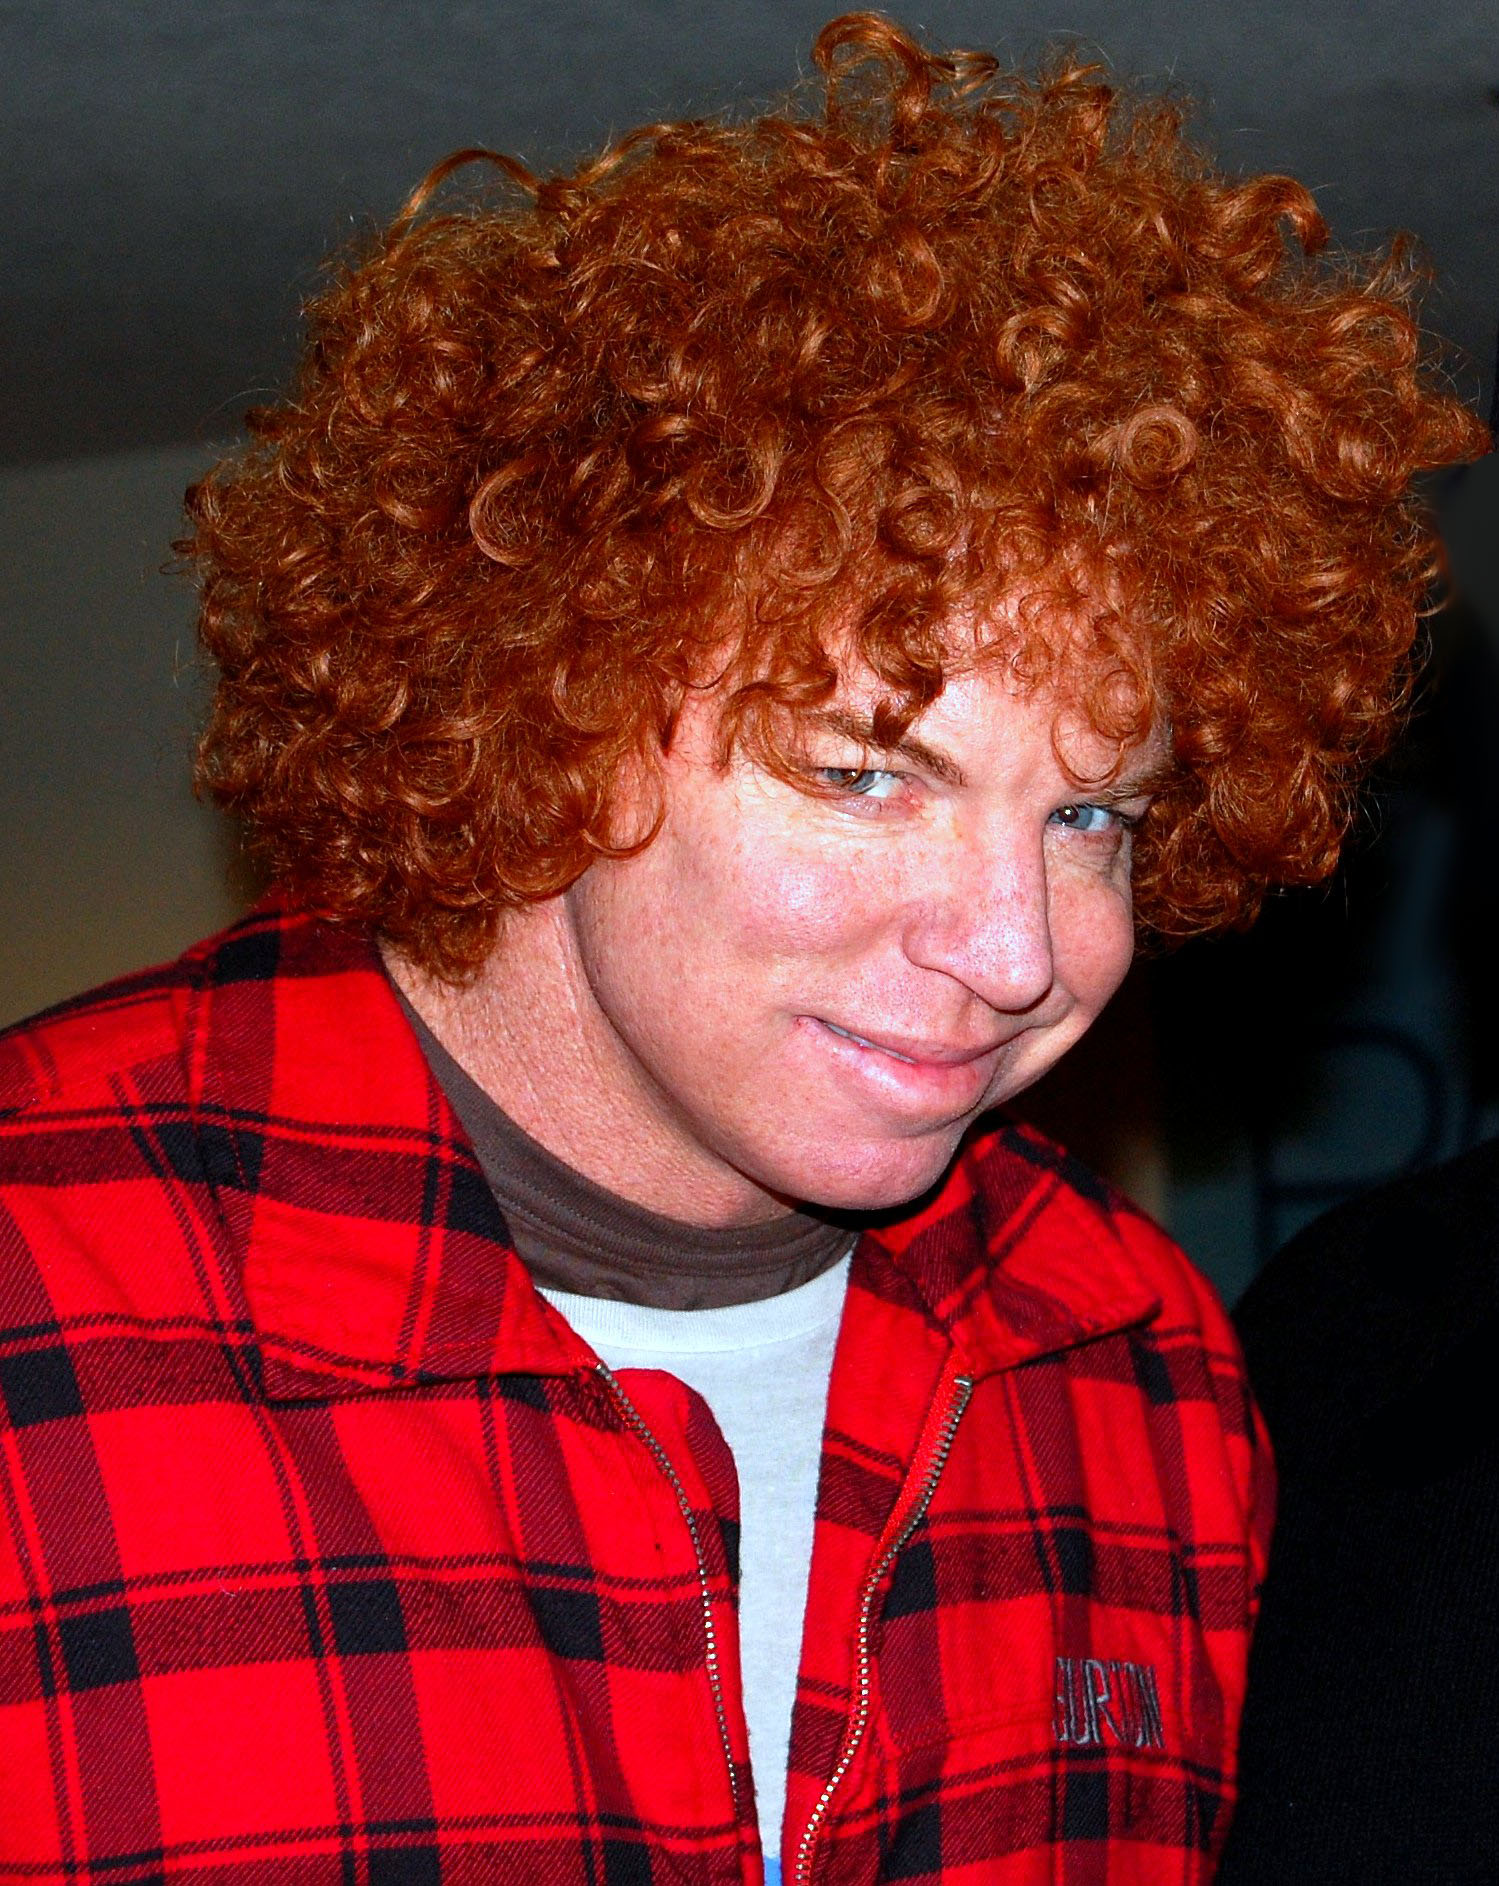 File:CarrotTop.jpg - Wikipedia